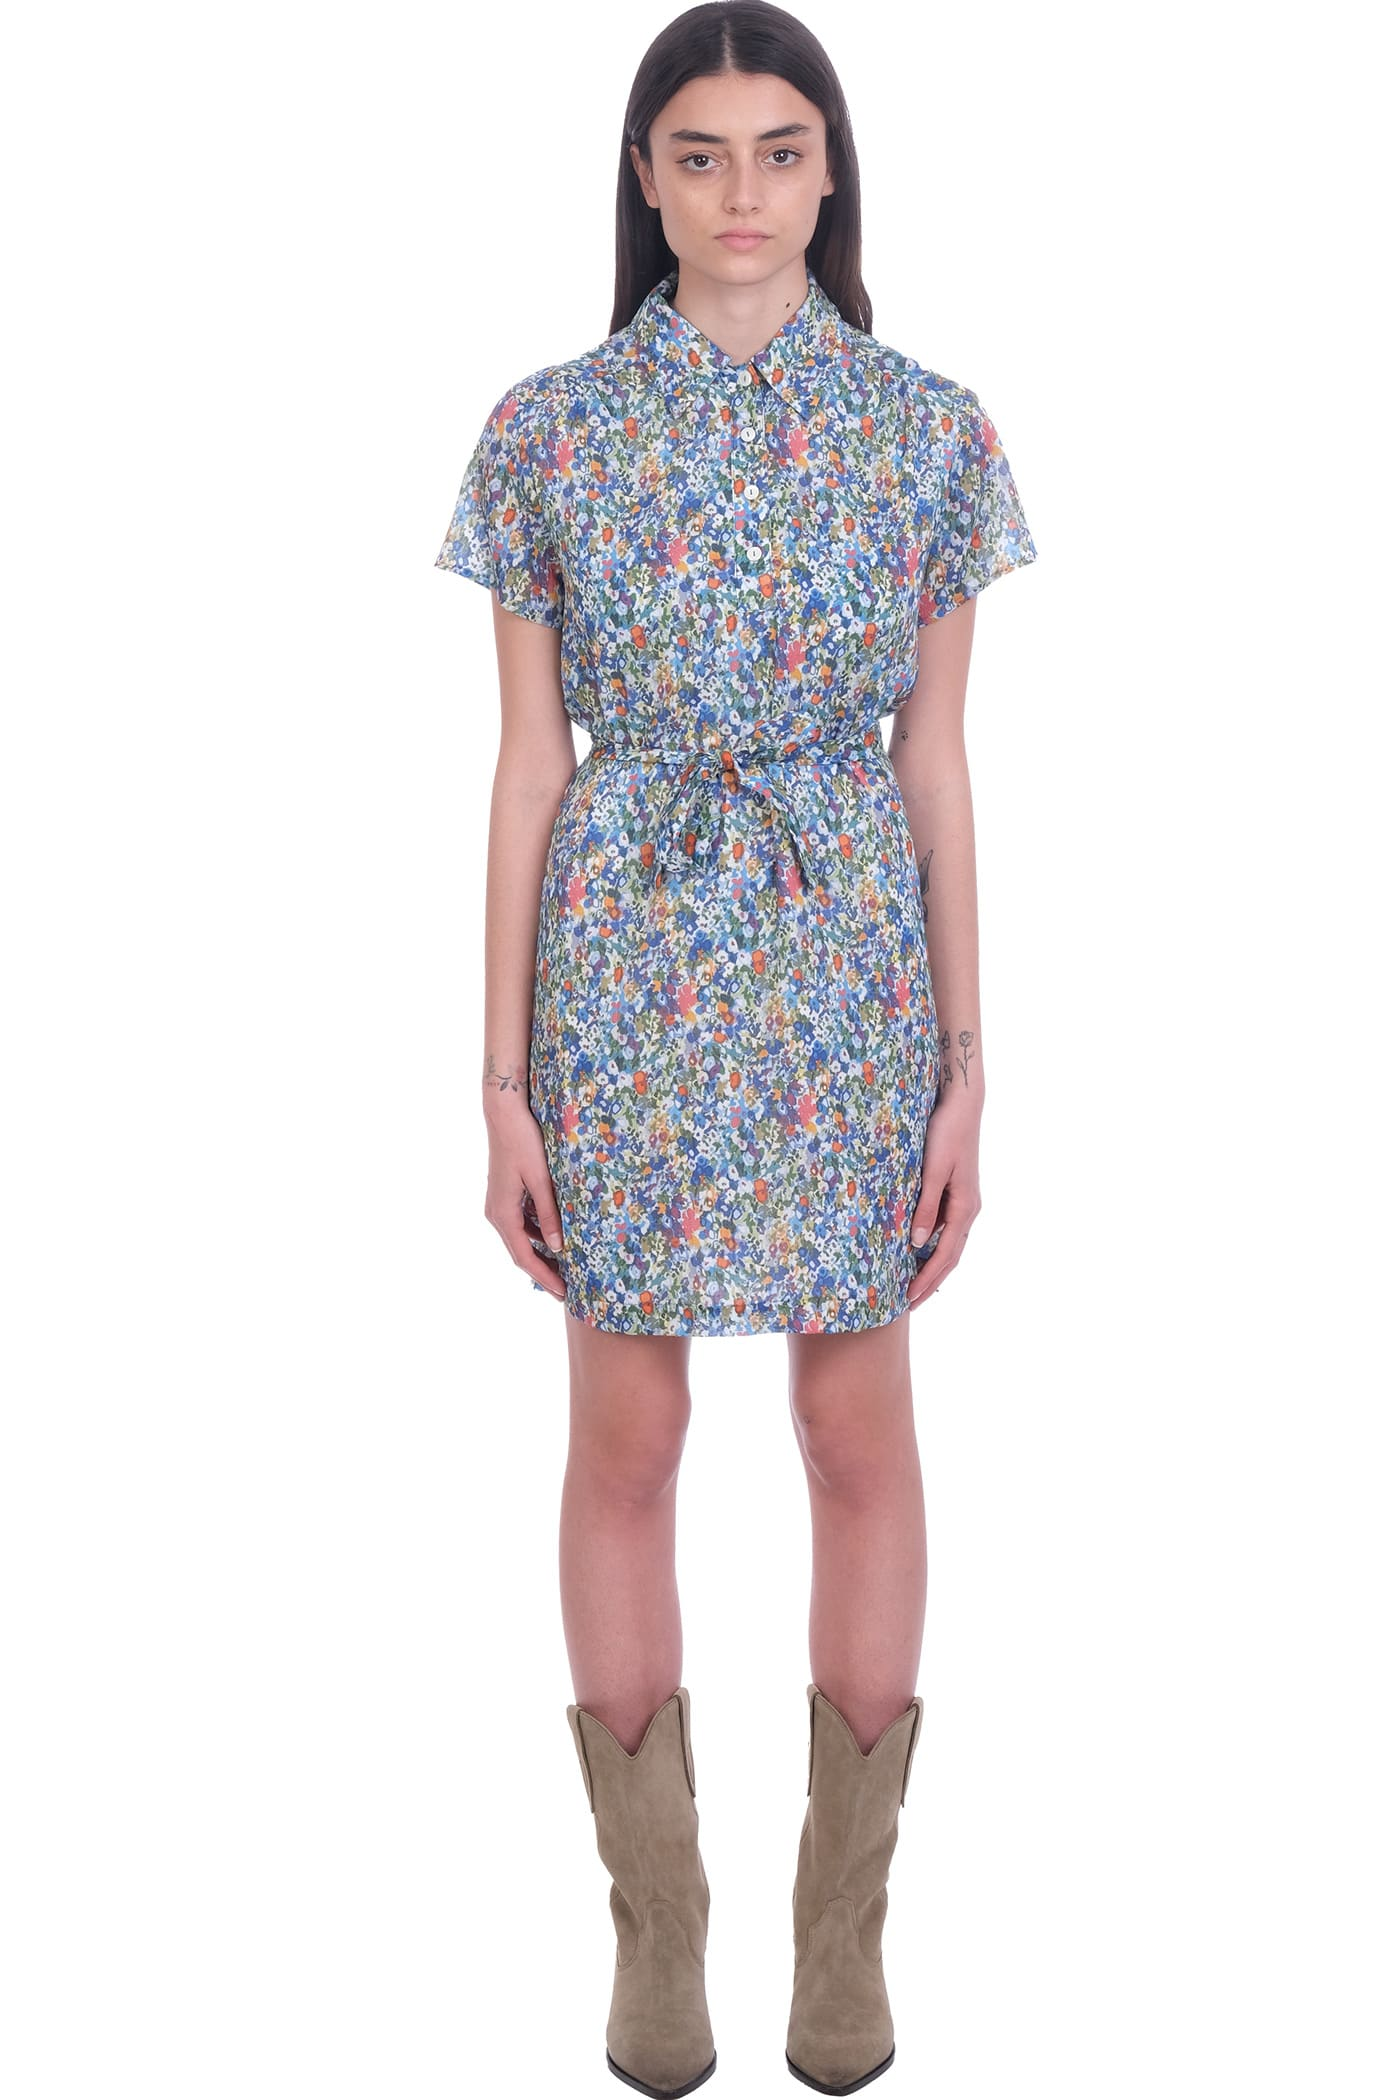 Buy A.P.C. Prudence Dress In Multicolor Cotton online, shop A.P.C. with free shipping